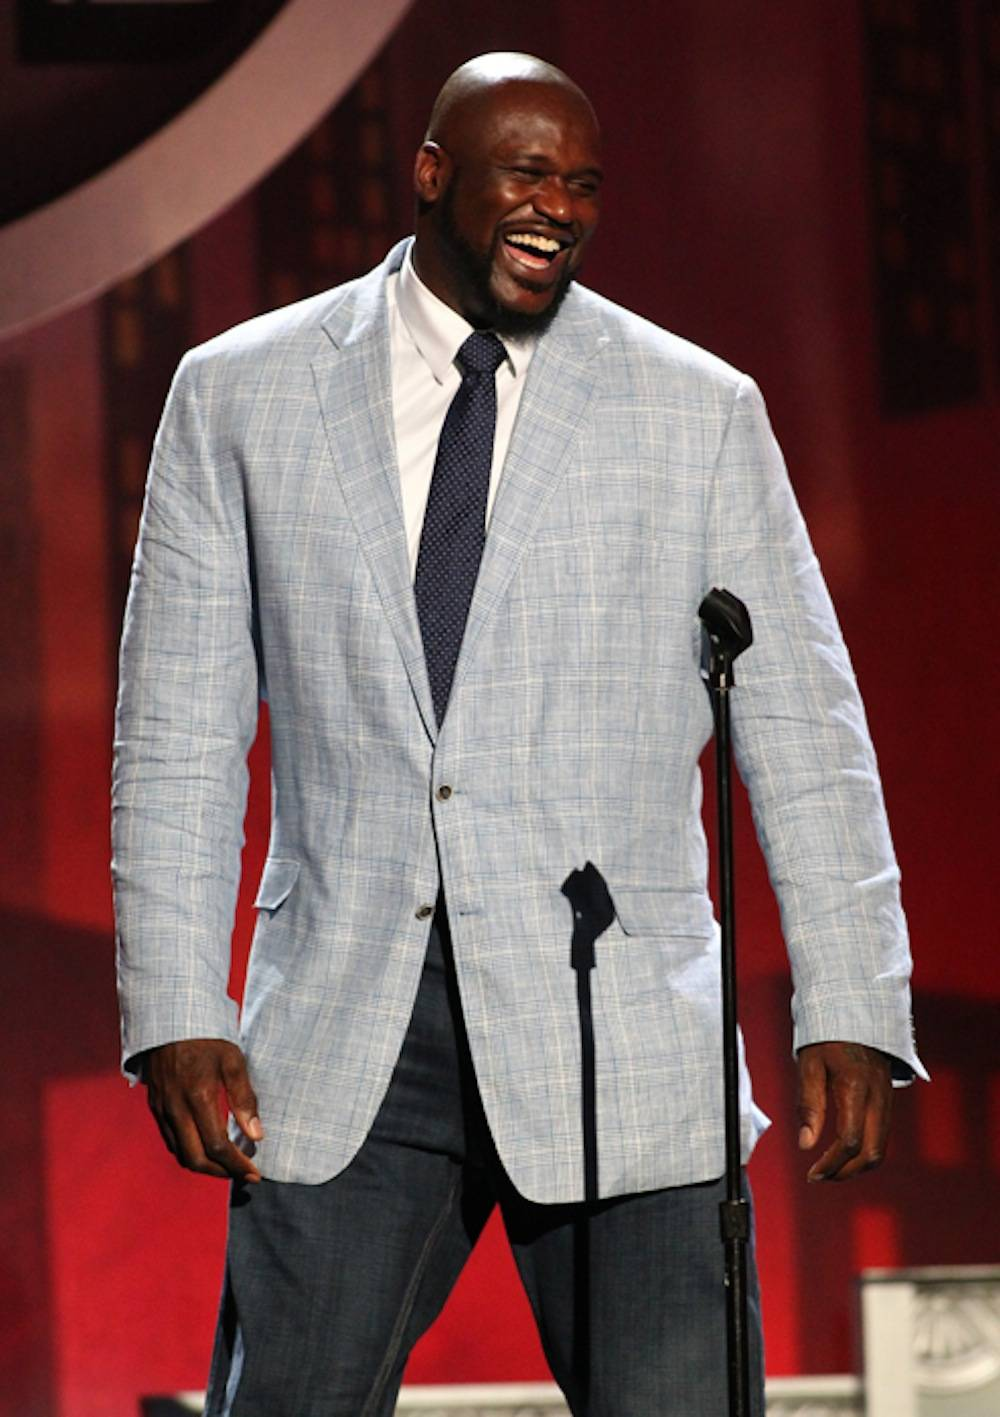 Shaquille O'Neal All Star Comedy Jam at TheJoint on Saturday, Aug. 31